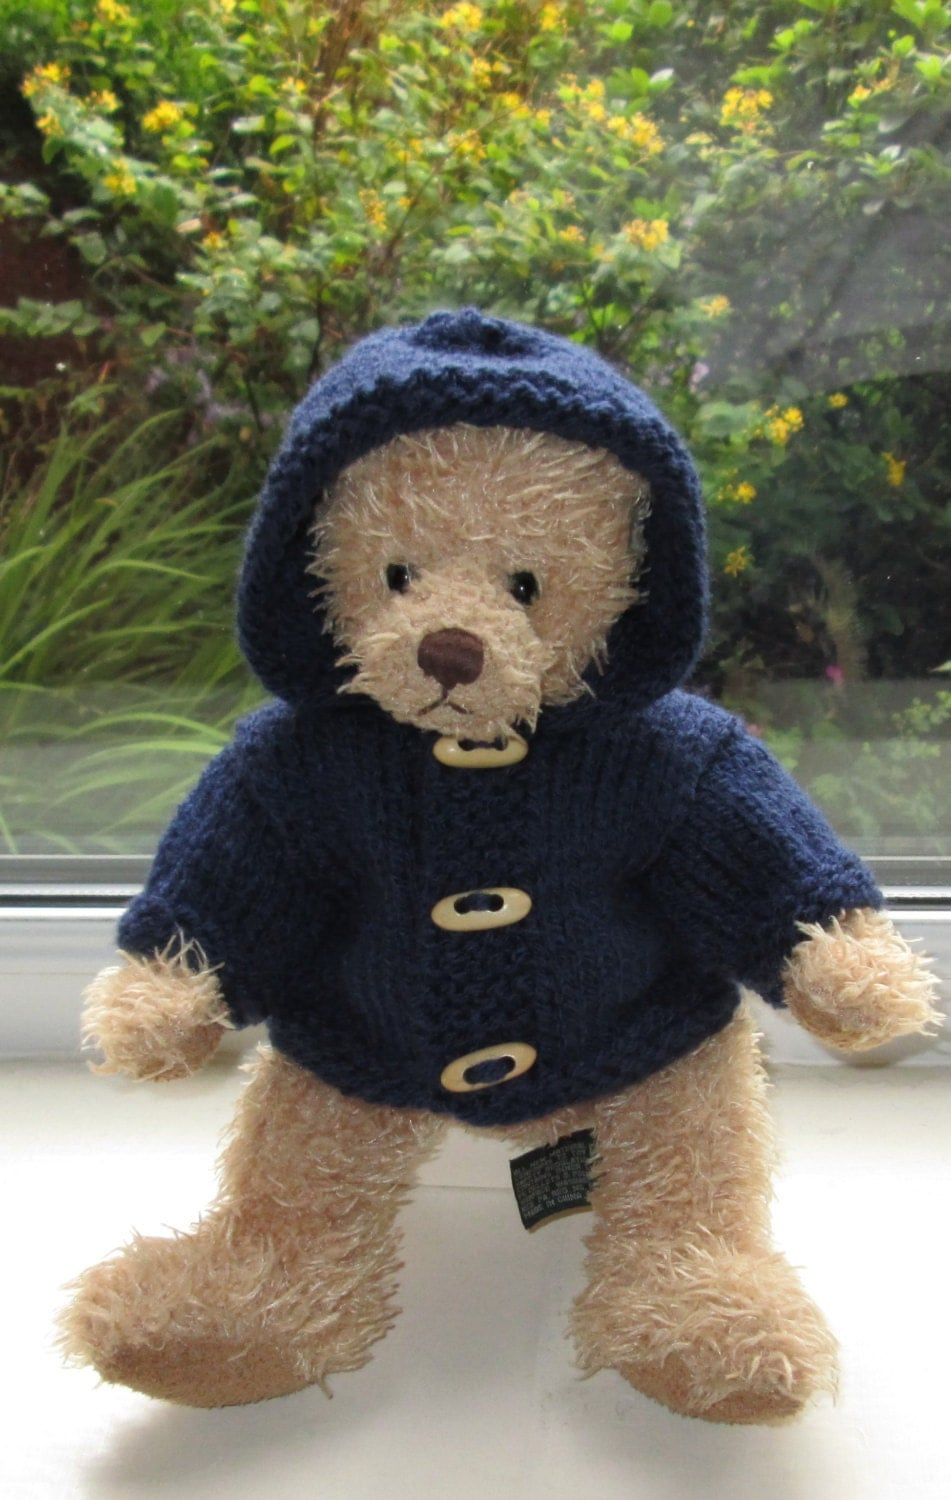 Knitting Clothes For Teddy Bears : Teddy bear clothes outfit hand knitted navy blue hooded aran